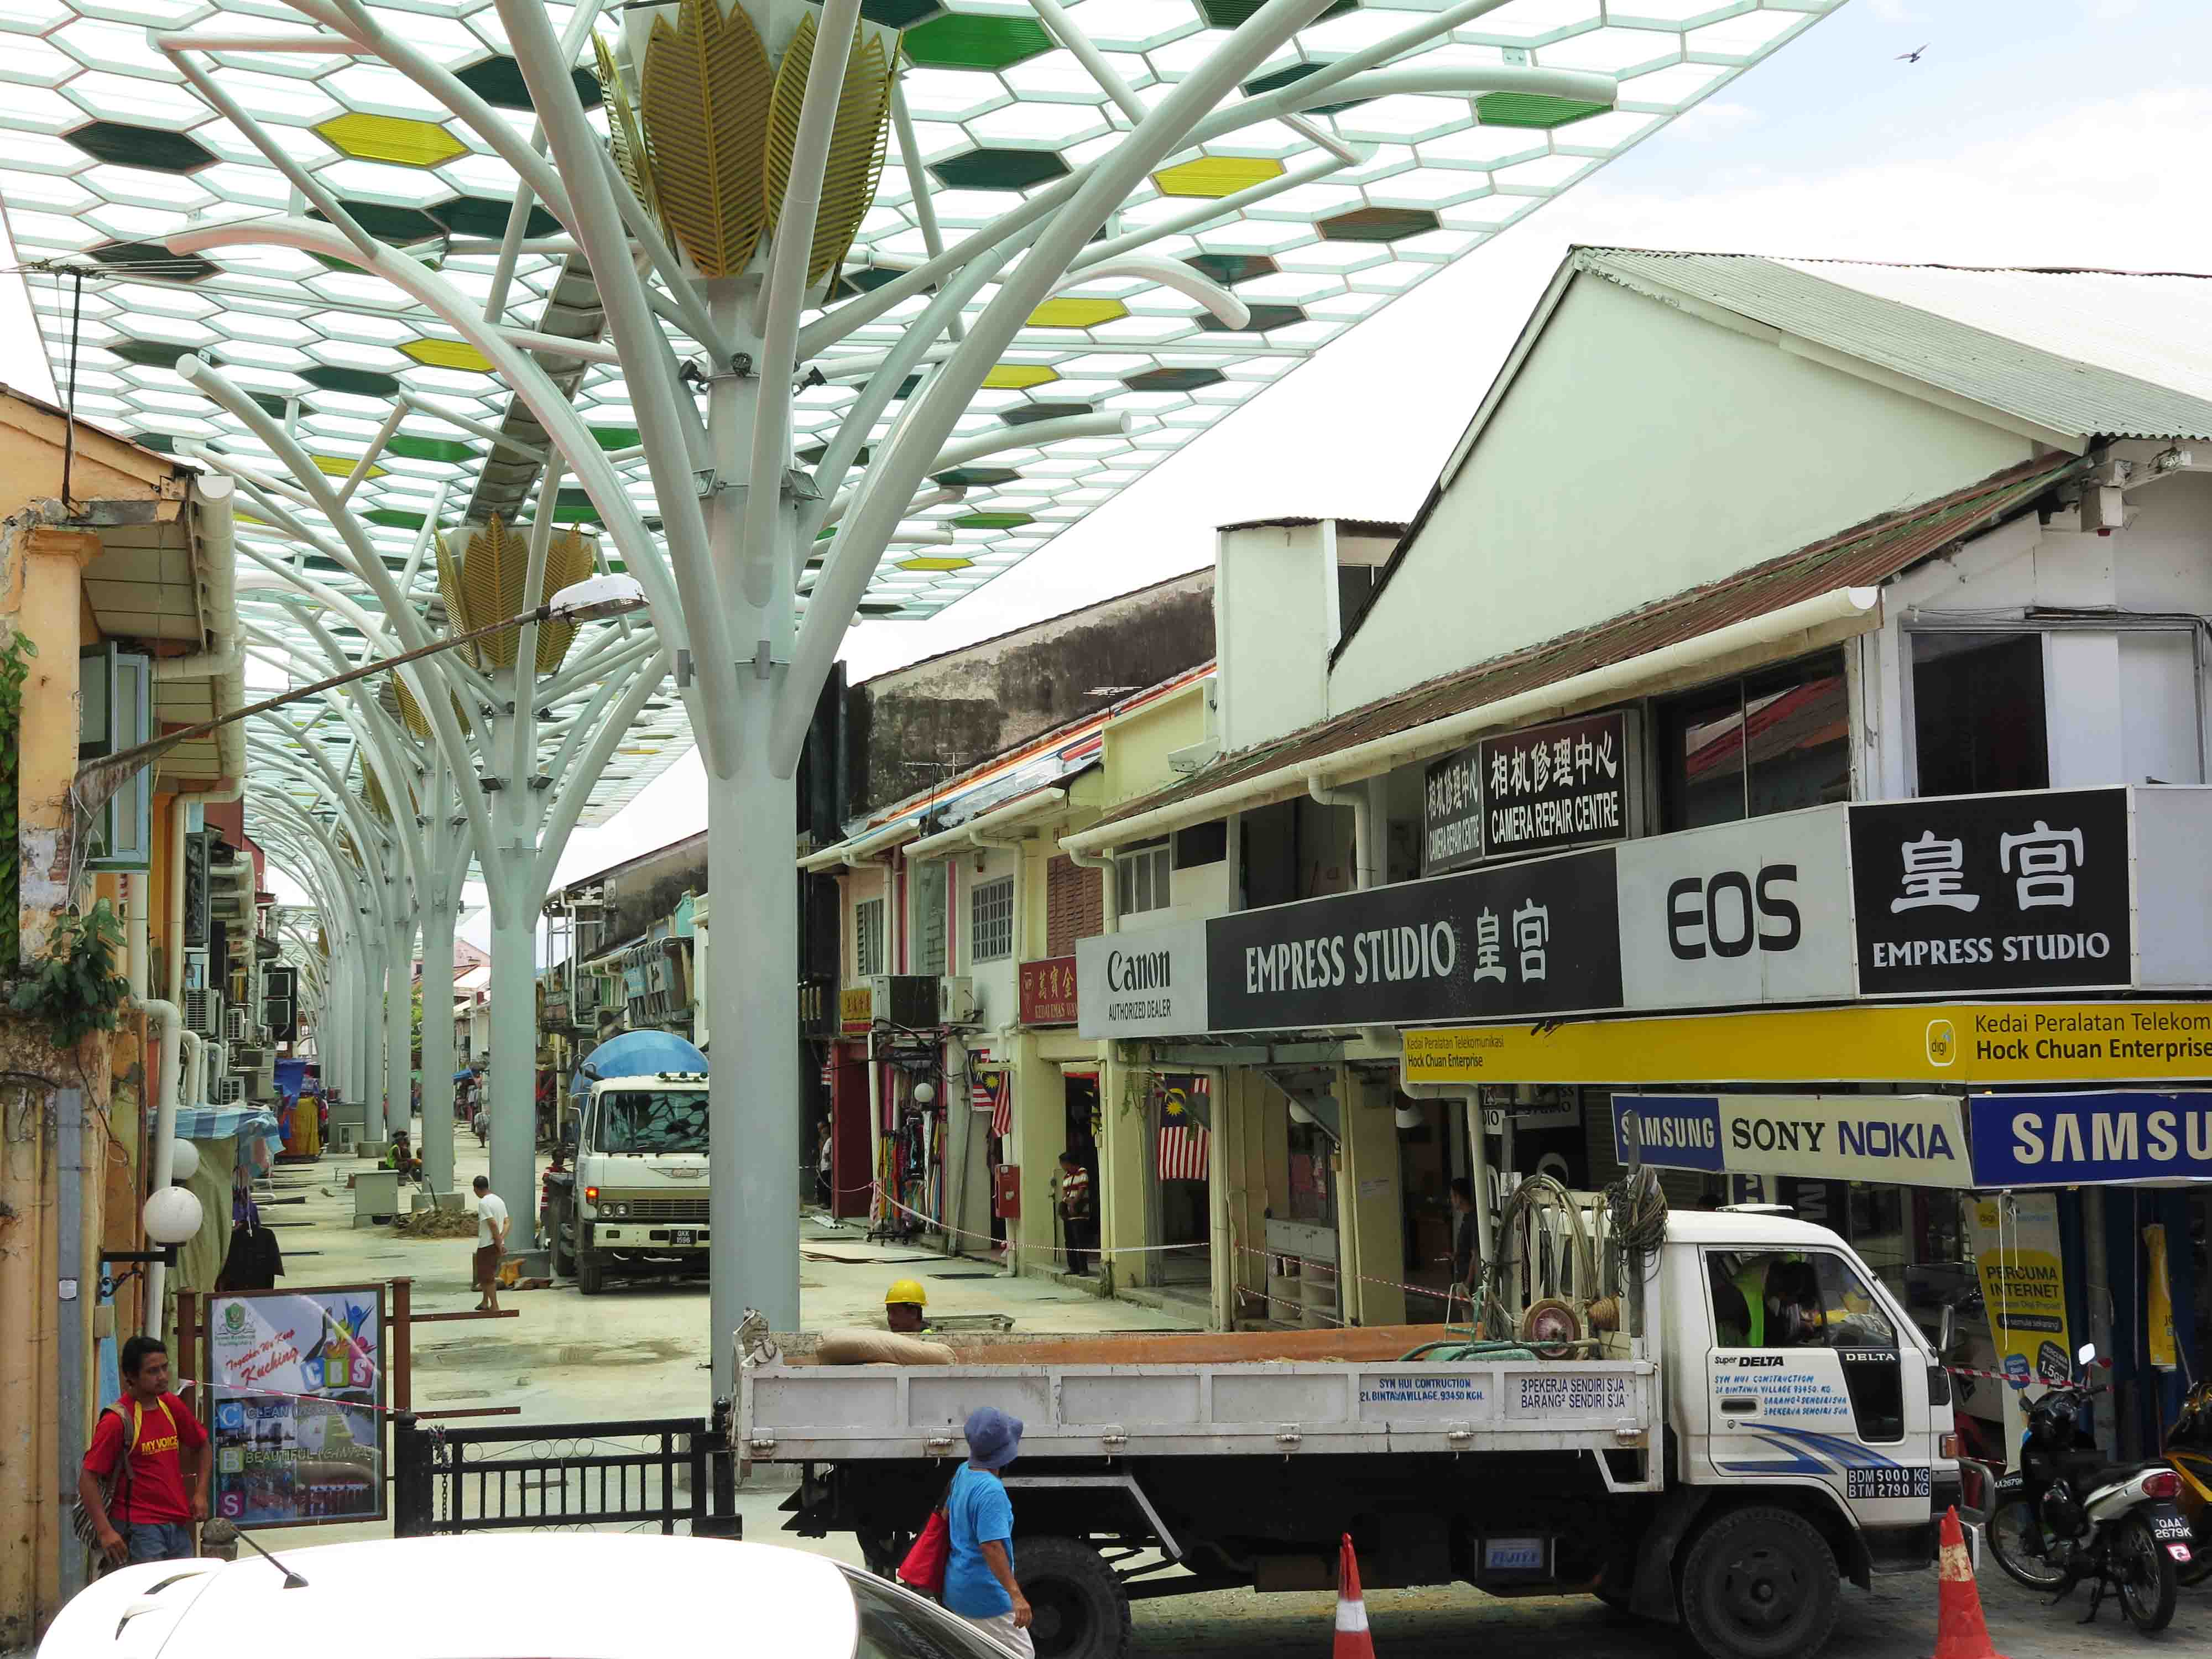 07/04/2016. Still under works: India Street large steel and glass arcade (Kuching) (SHS member photo)